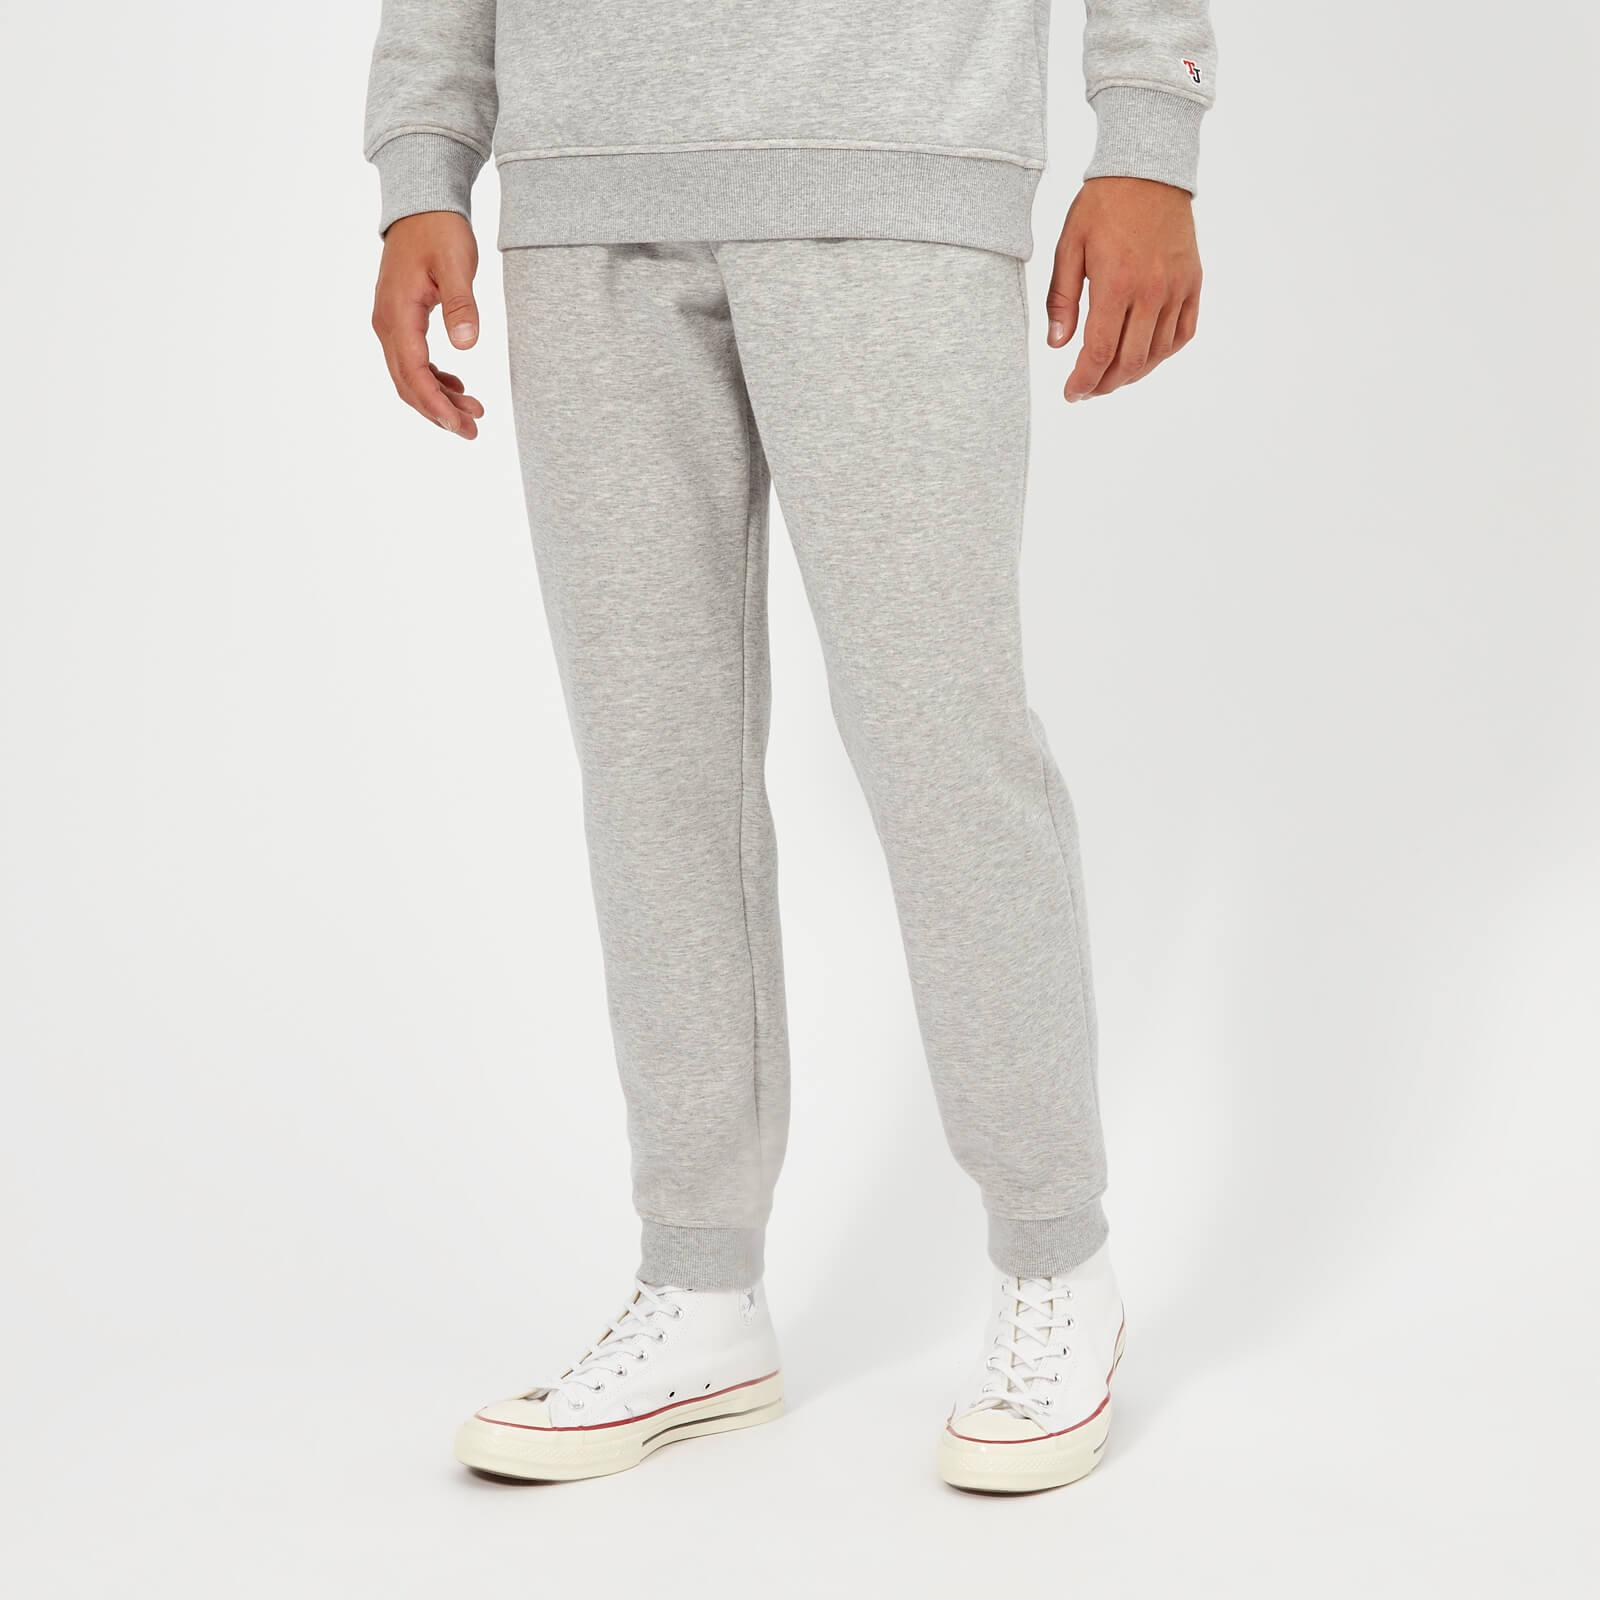 c4b937cf812b8 Lyst - Tommy Hilfiger Tjm Tommy Classic Joggers in Gray for Men